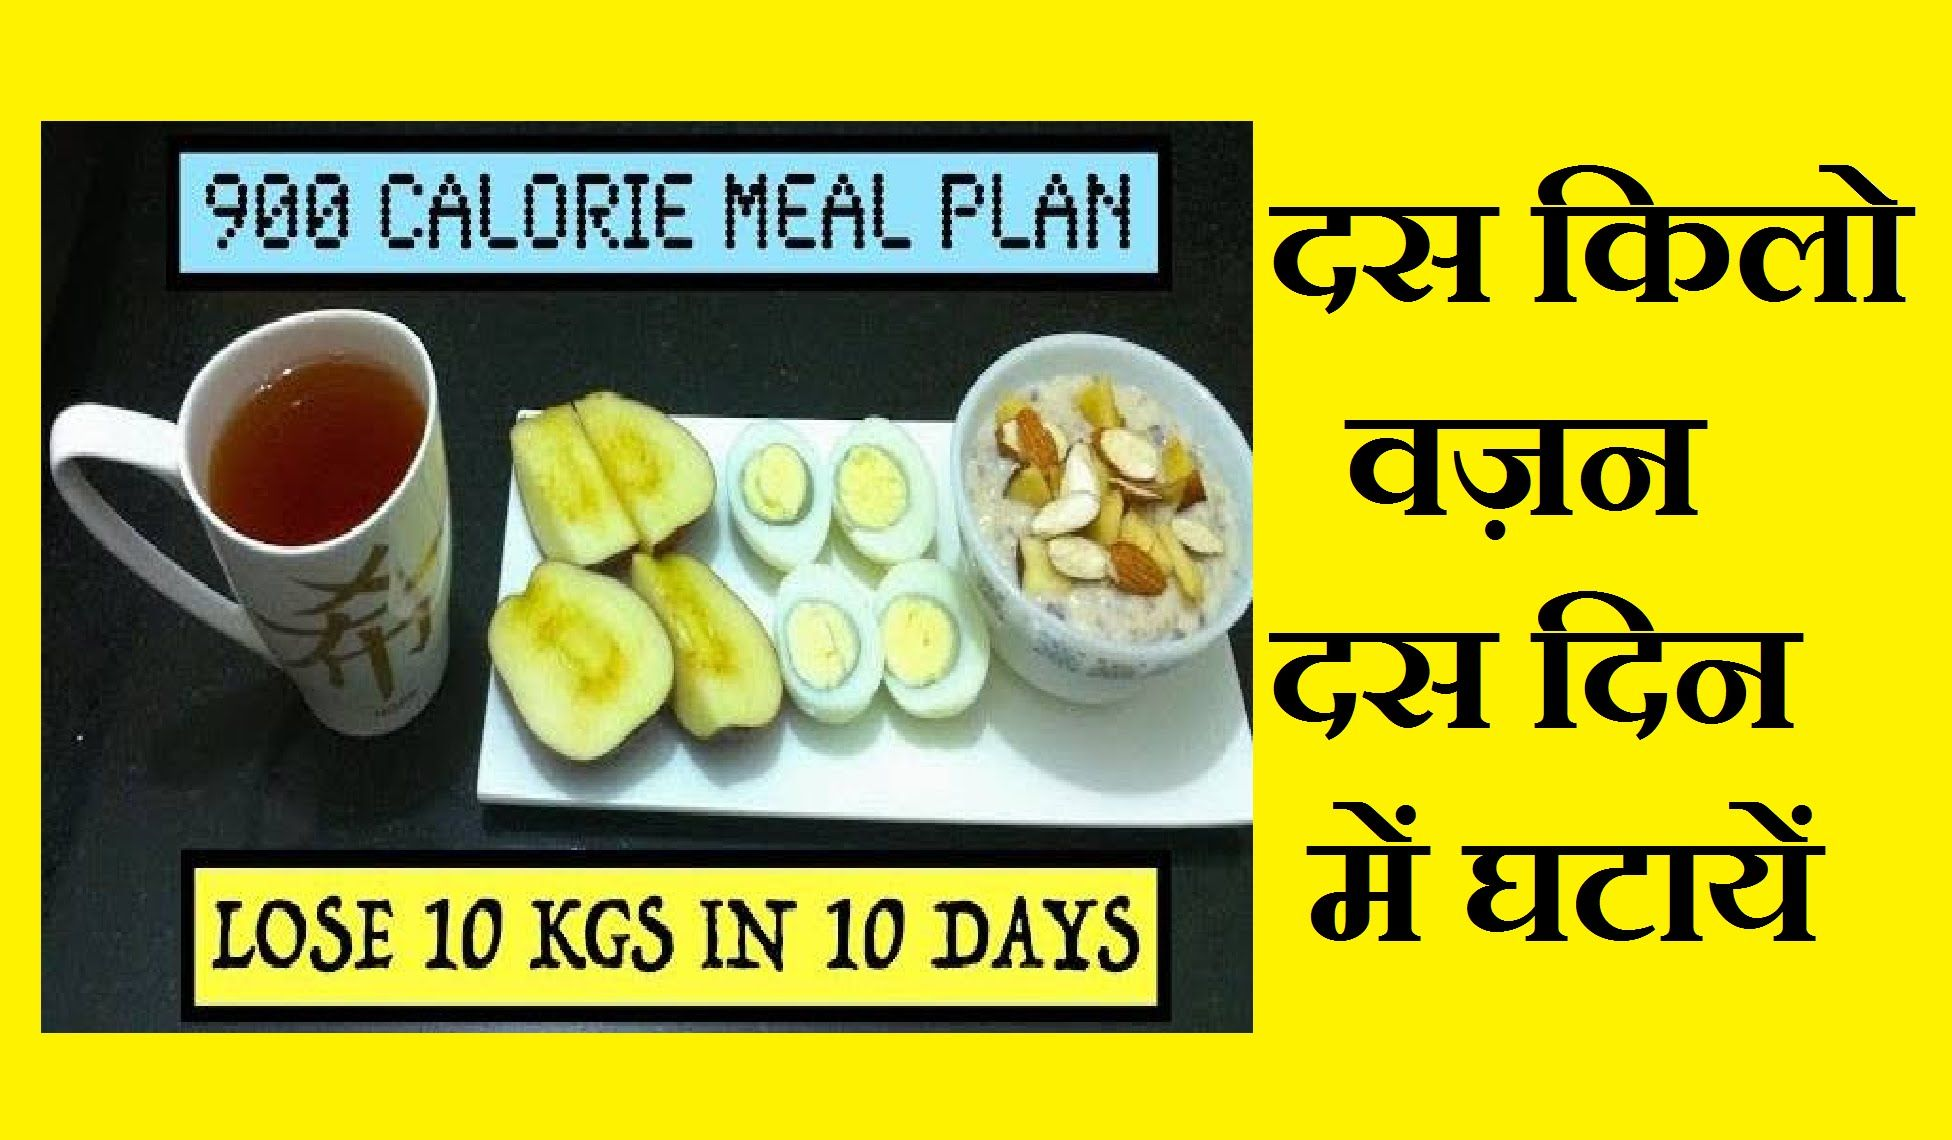 Lose weight diet in hindi lose weight diet how to lose weight lose weight diet in hindi lose weight diet how to lose weight diet doctor how to lose weight quickly and sustainably with no hunger no calorie counting ccuart Image collections